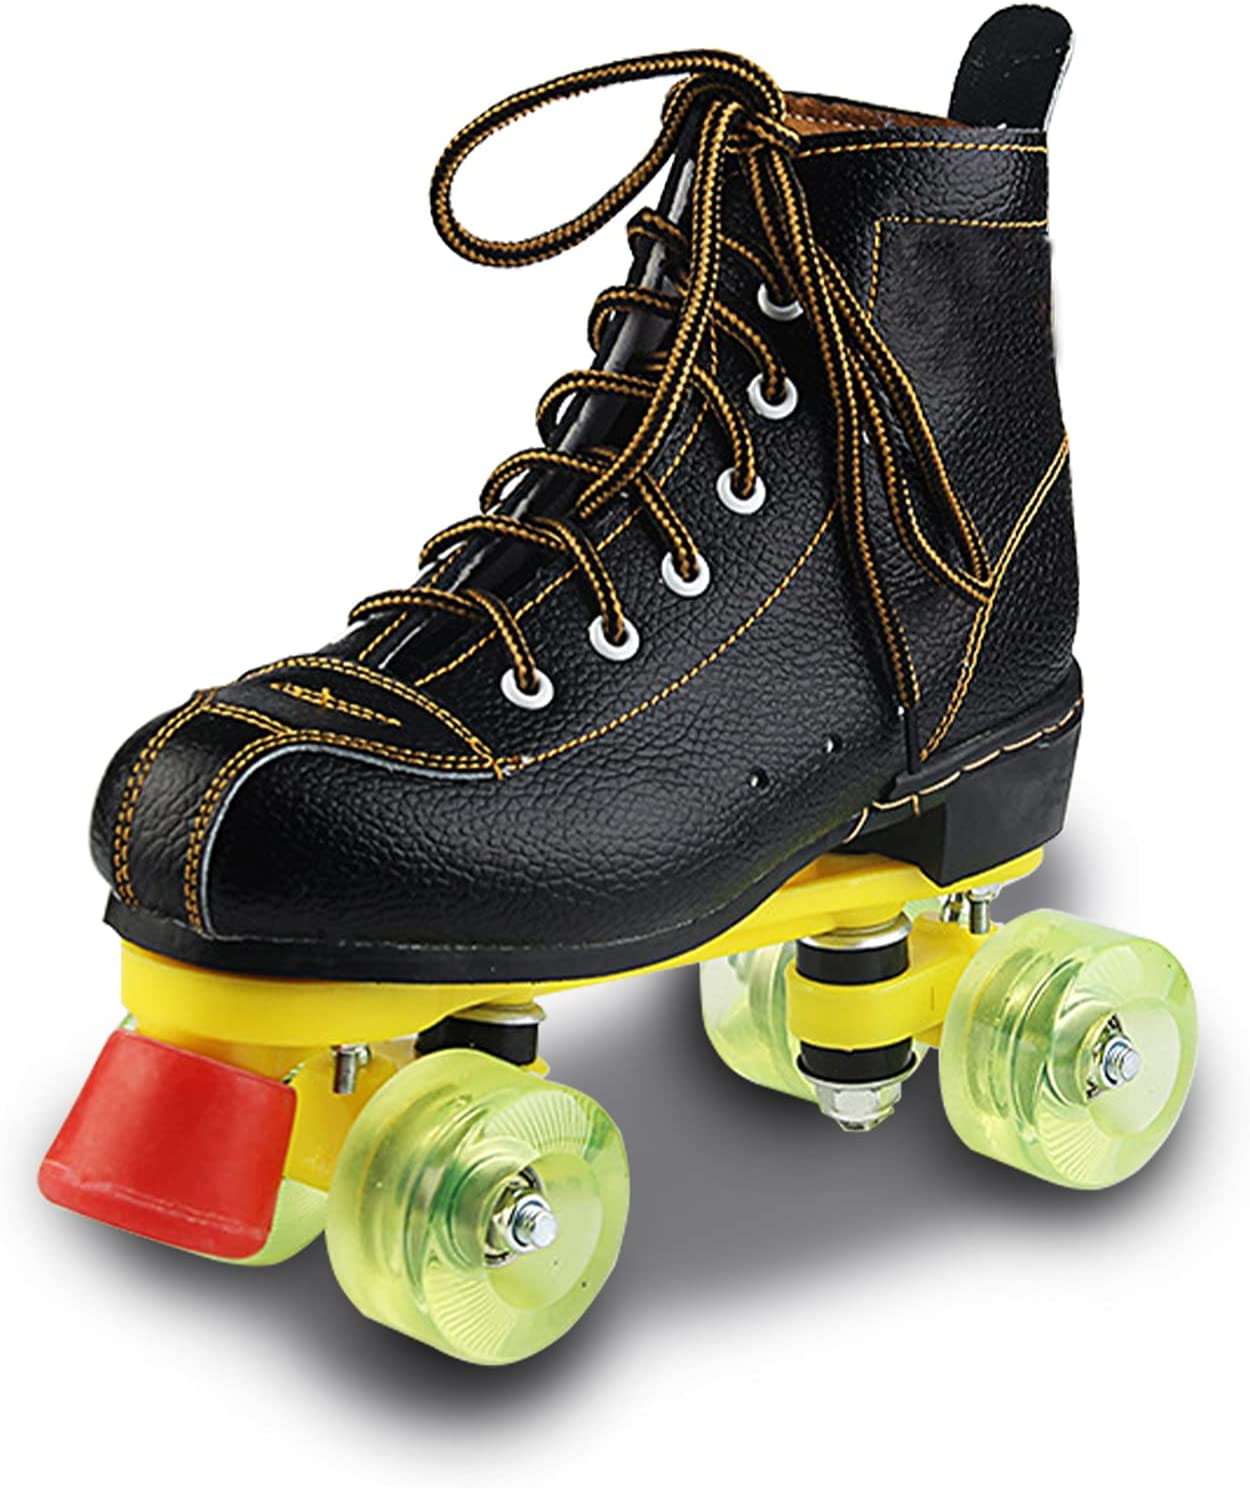 Fashion Black Department store Double-Row Roller Skates Professional for Sales results No. 1 Women Fi